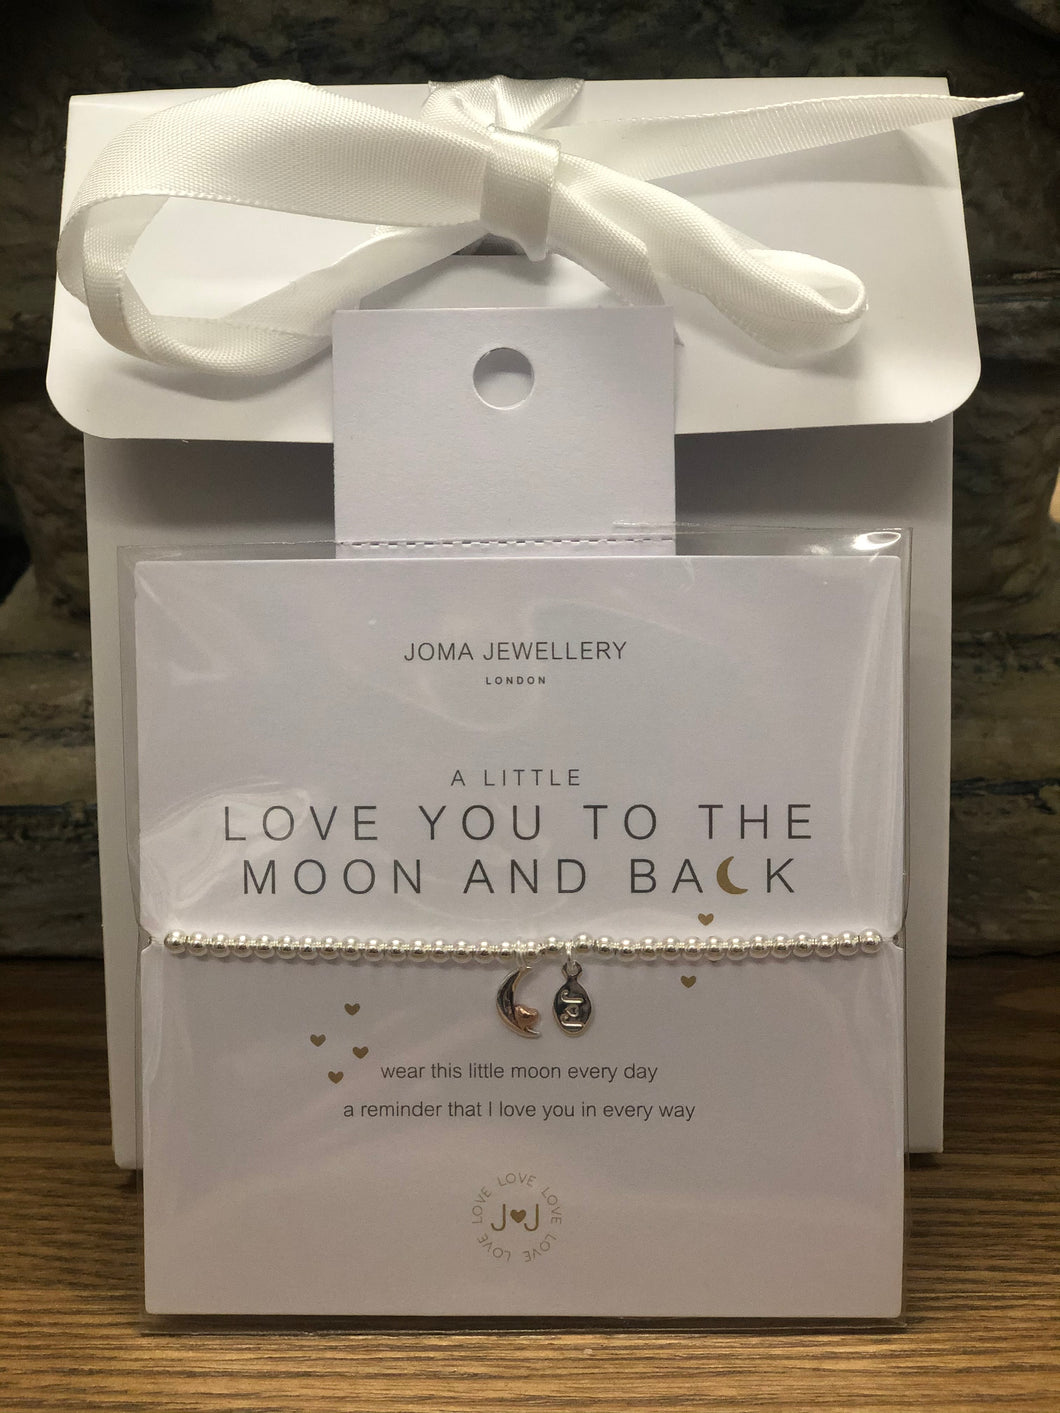 A LITTLE LOVE YOU TO THE MOON AND BACK BRACELET